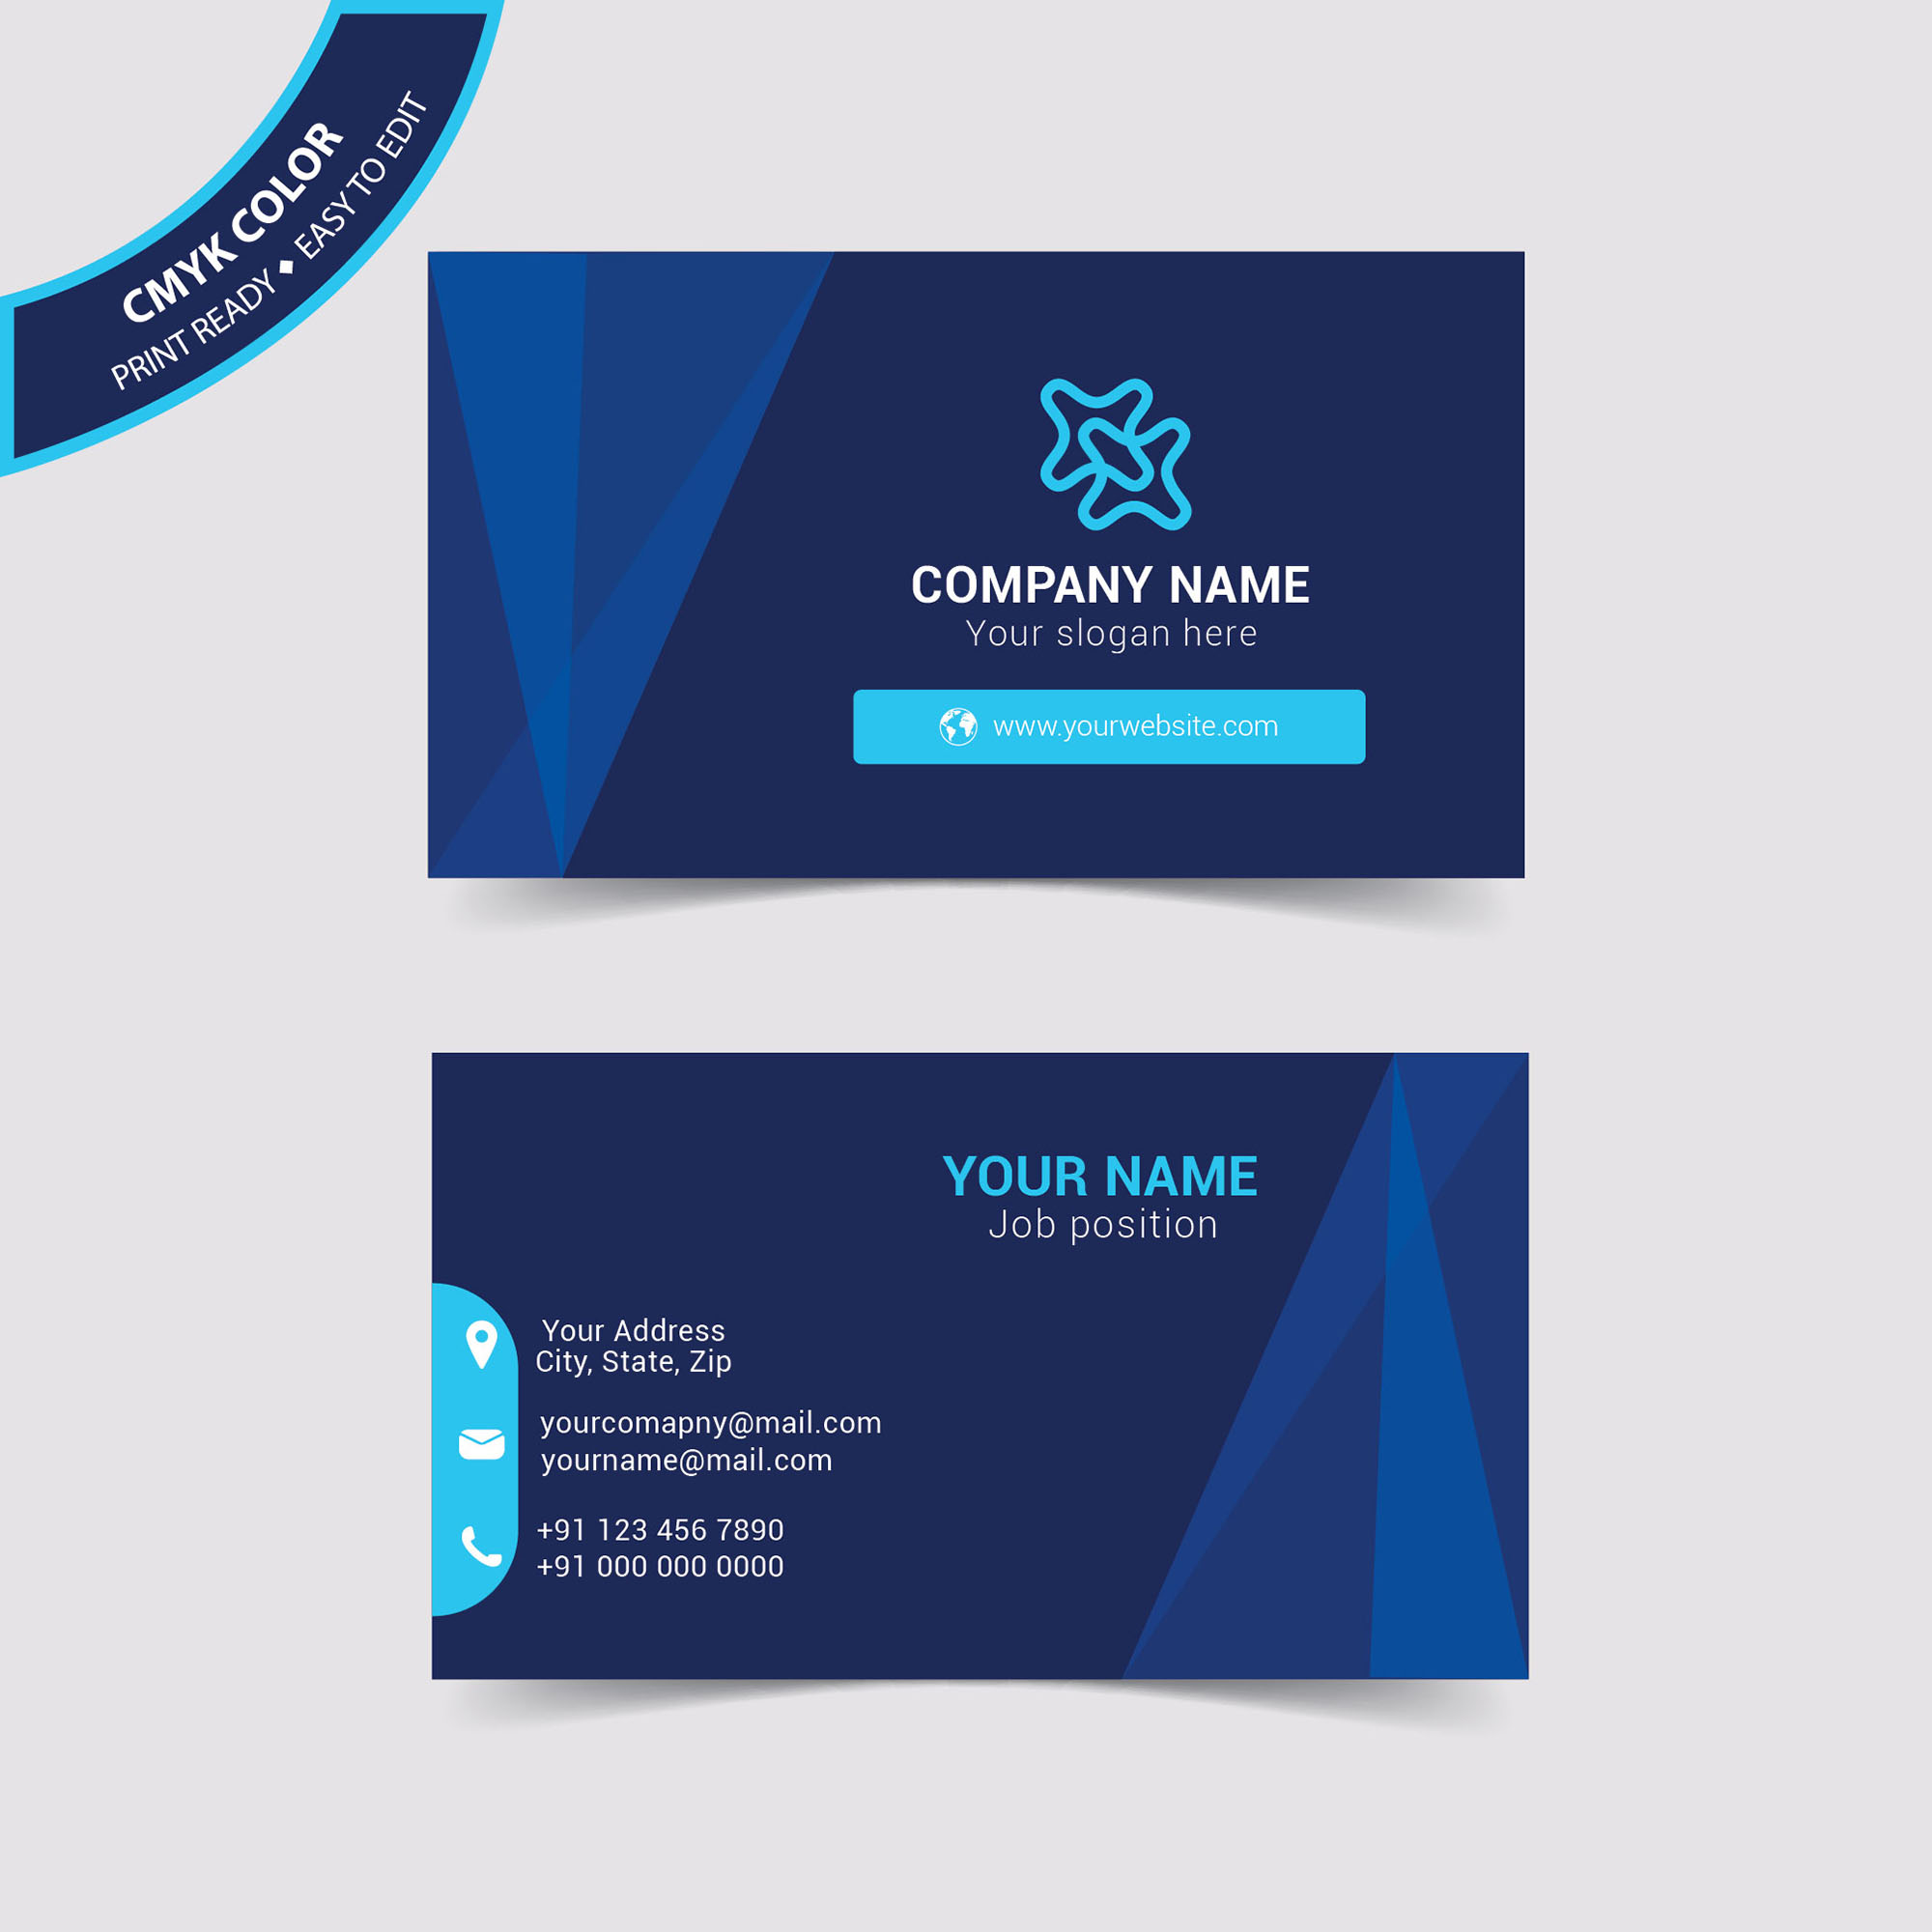 Blue creative business card design free download wisxi business card business cards business card design business card template design templates cheaphphosting Image collections